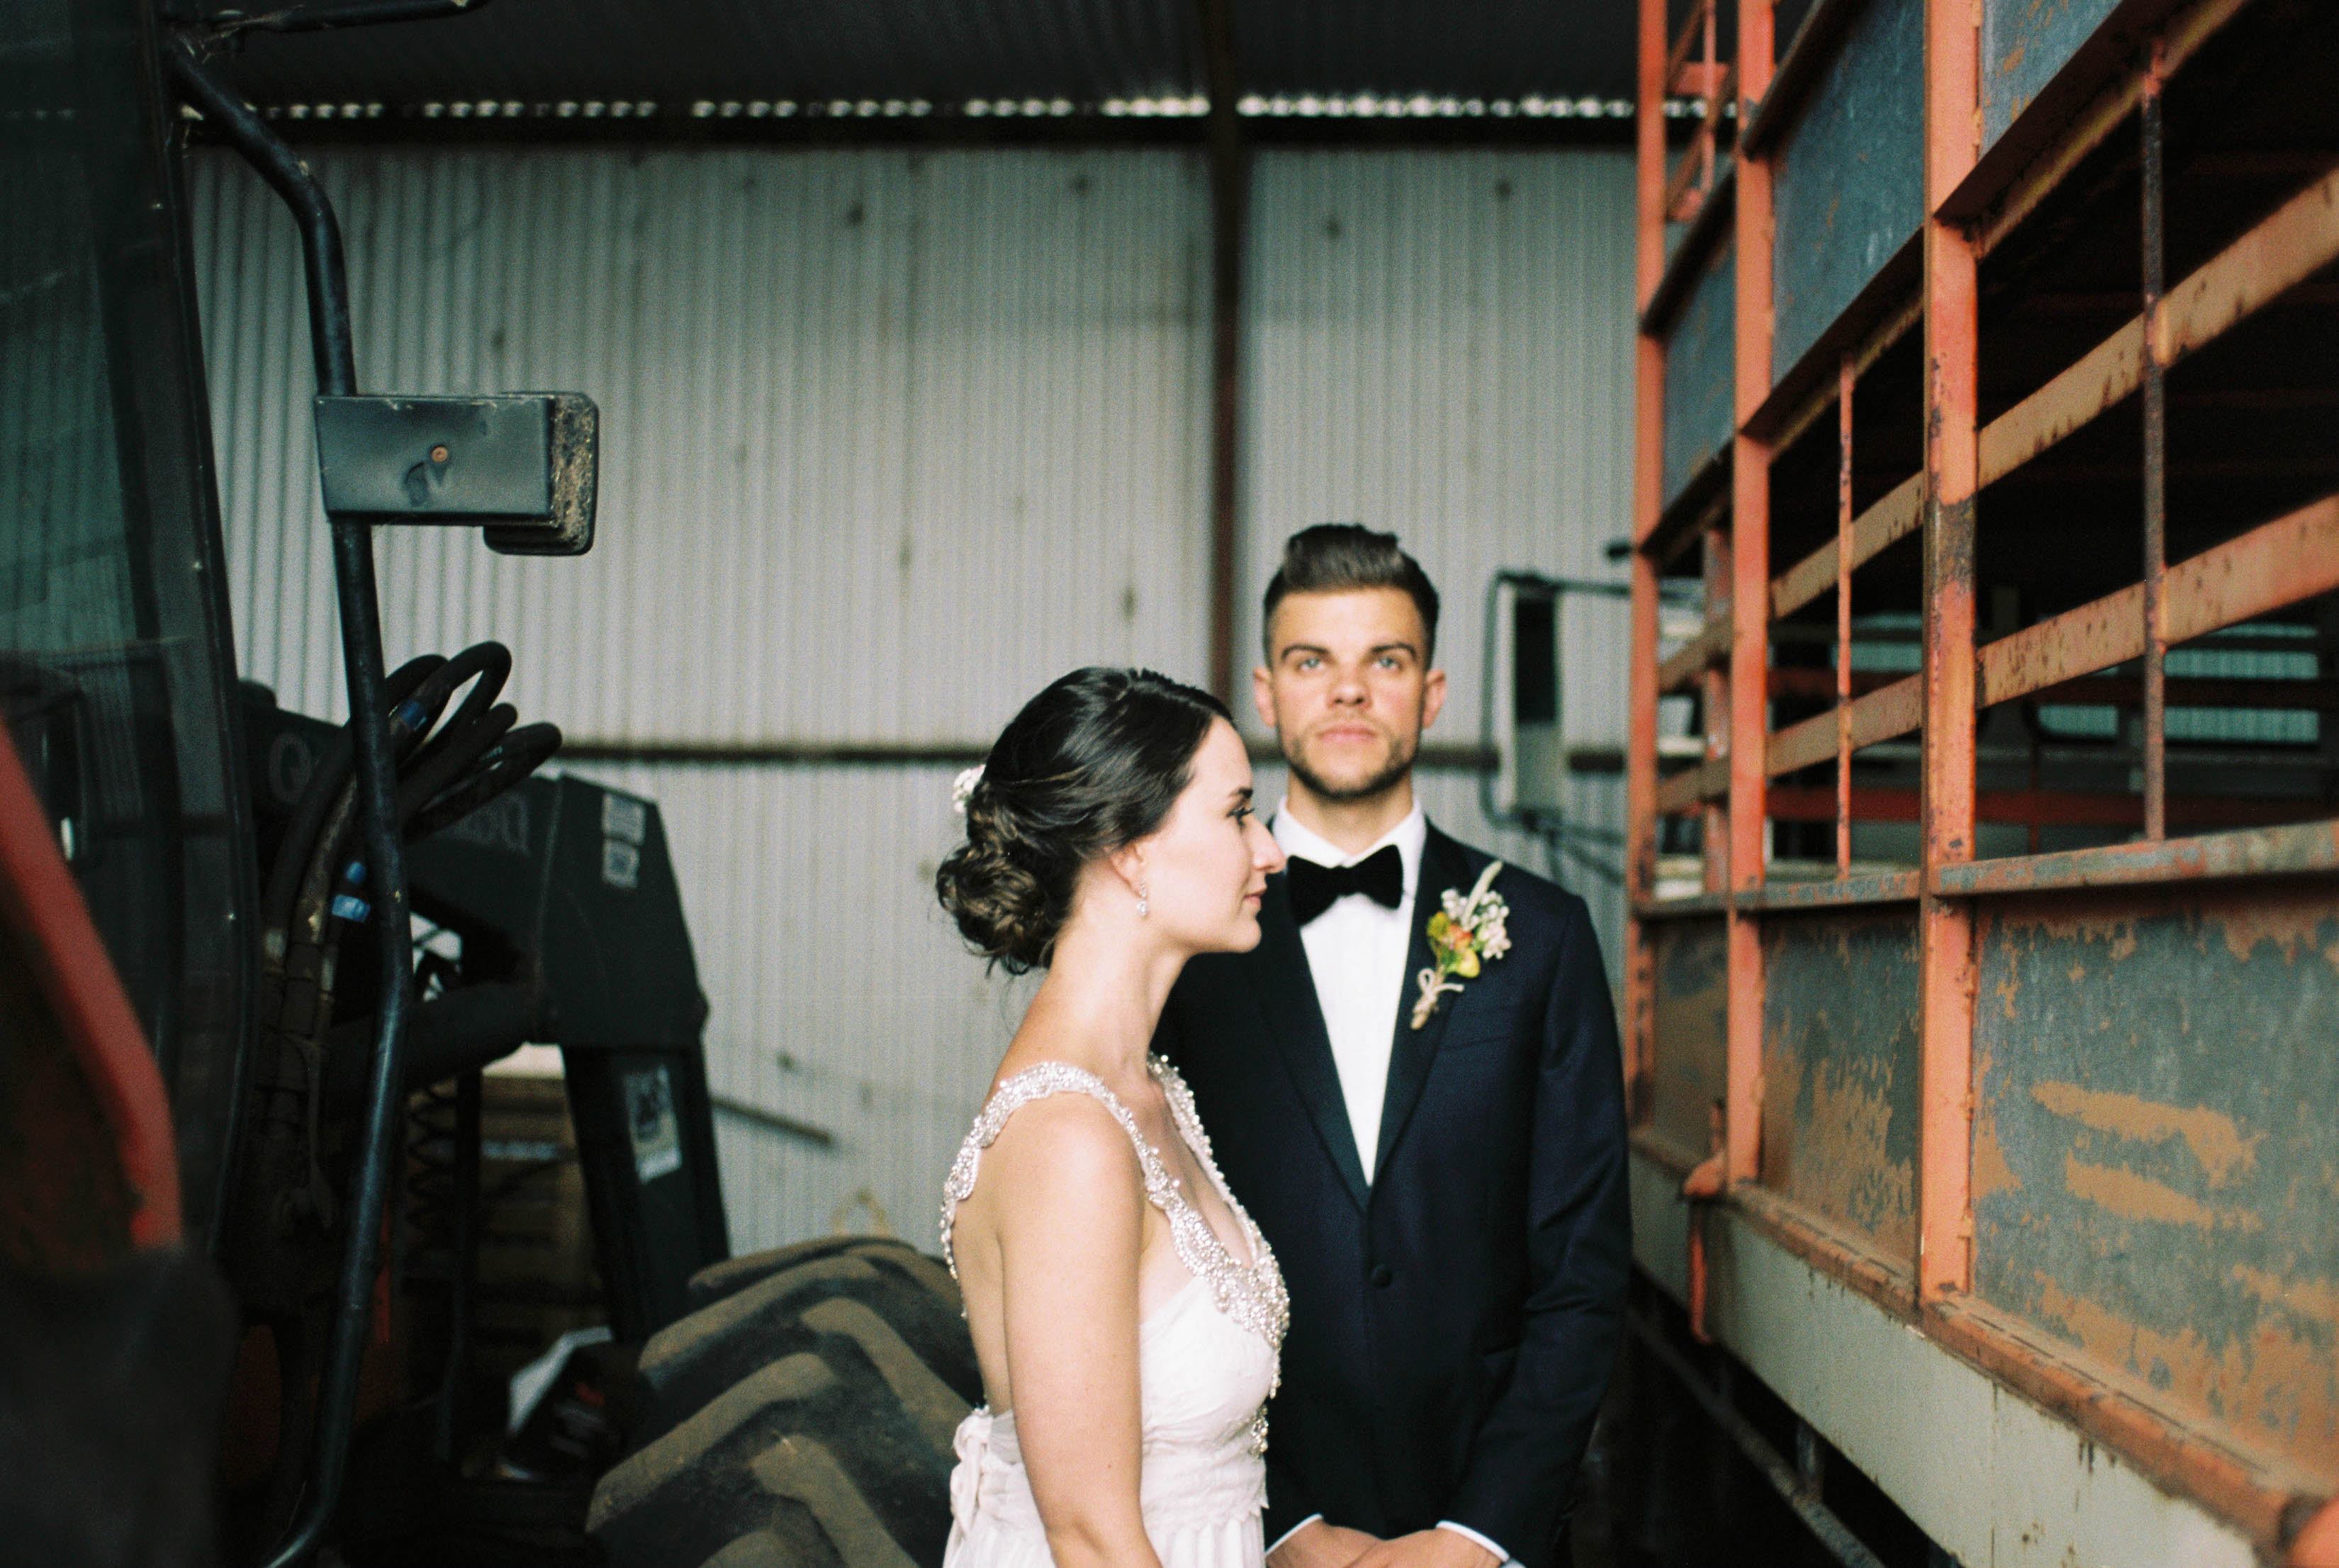 A posed portrait of the groom & bride standing in an old farm shed